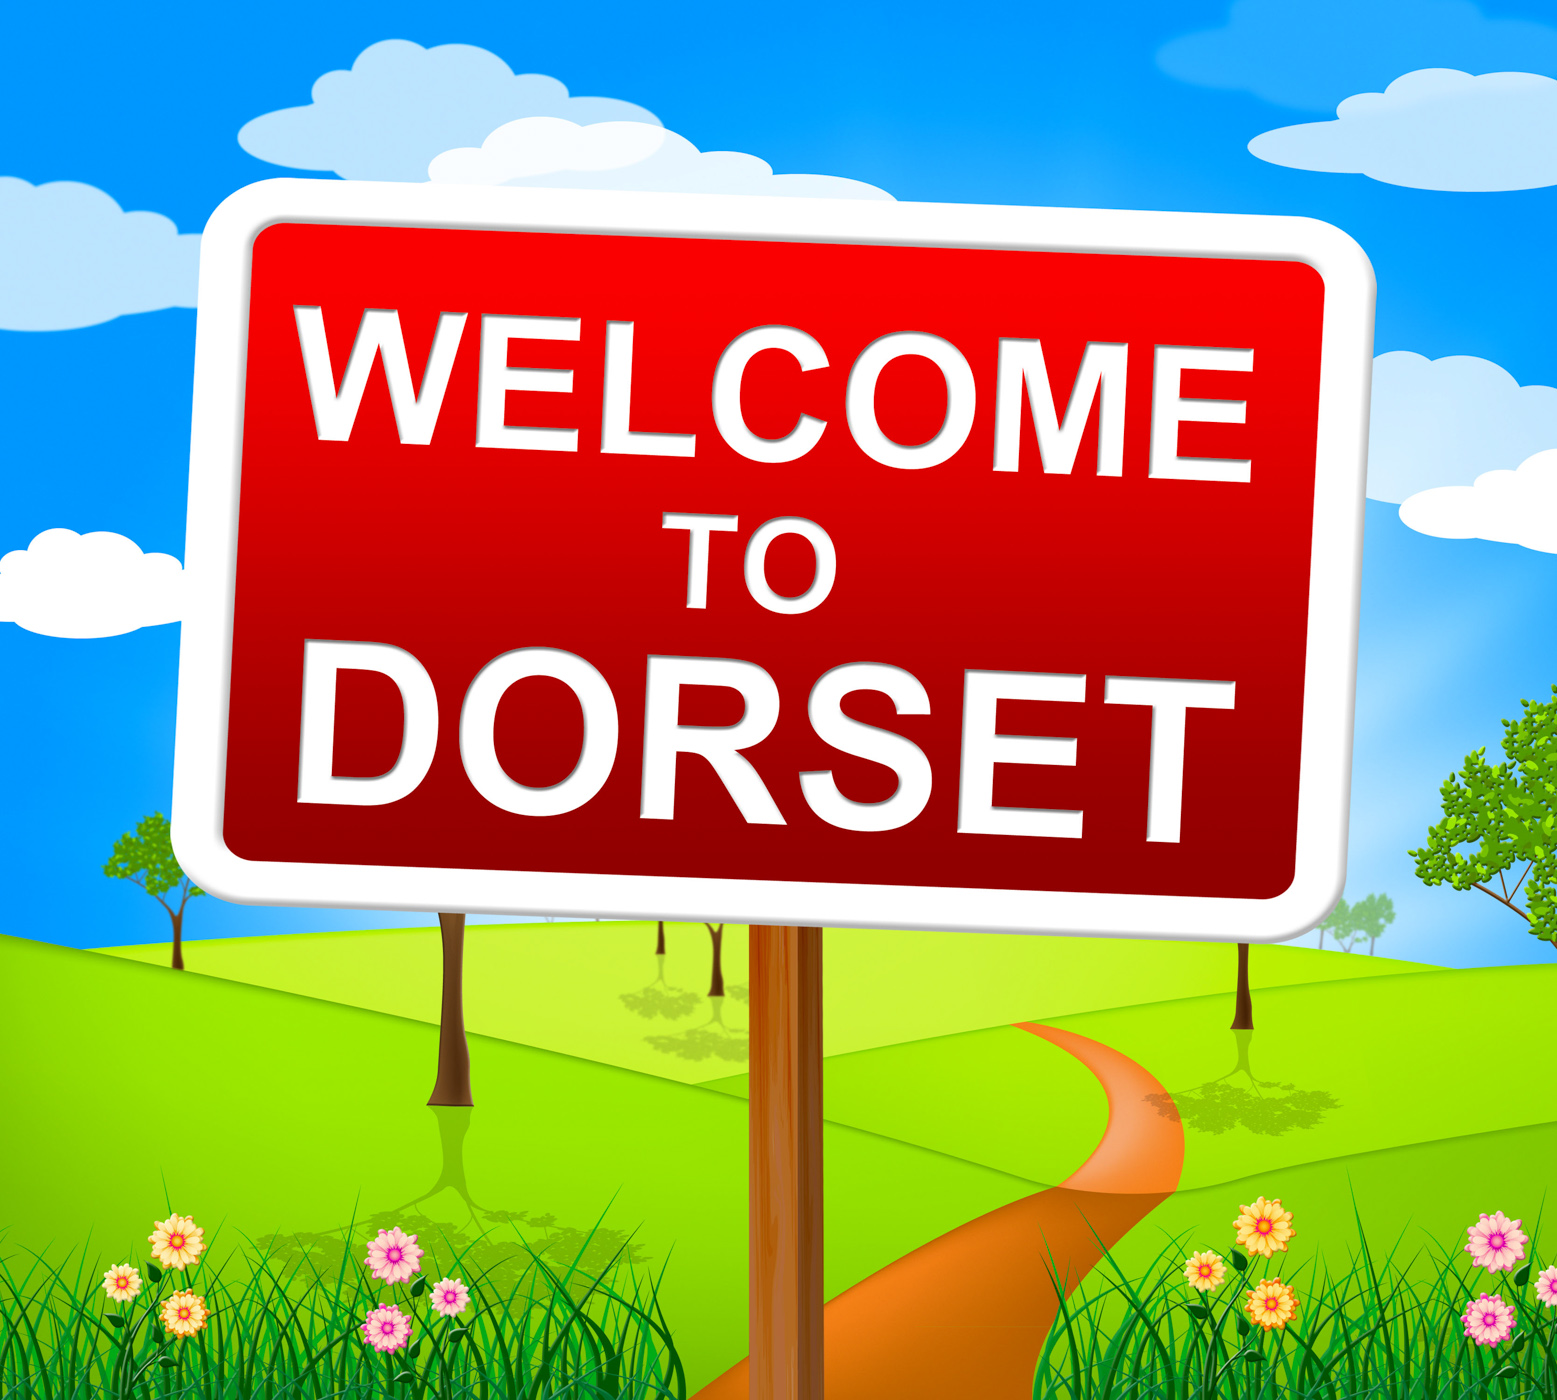 Welcome to dorset shows united kingdom and outdoor photo